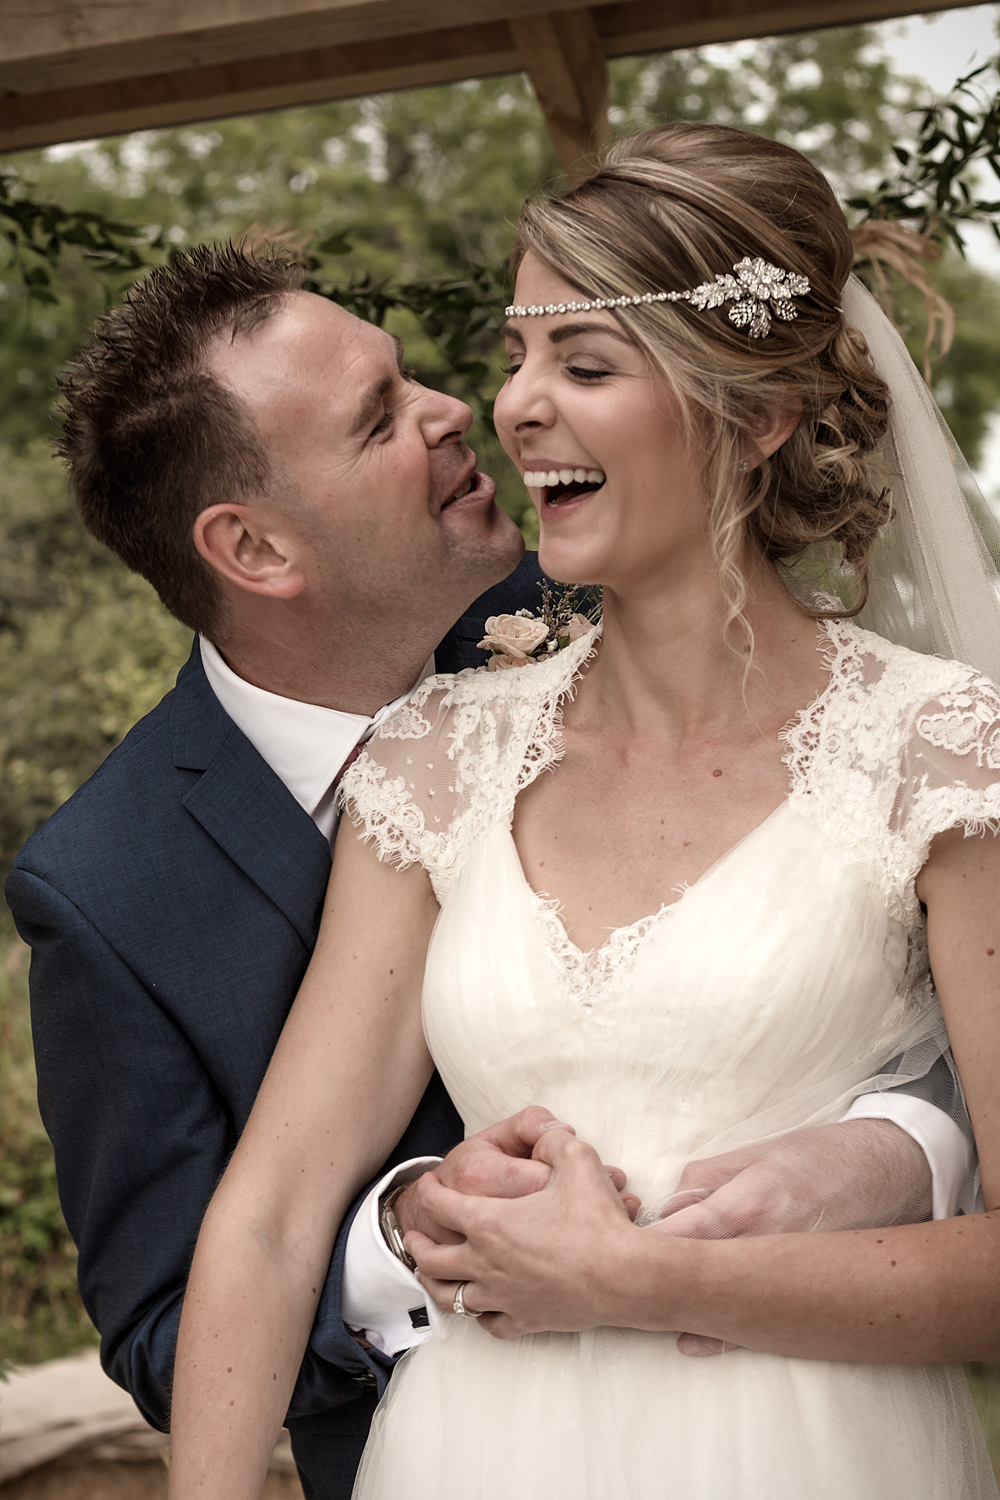 A Rustic Country Wedding at Knightor Winery - Image 24